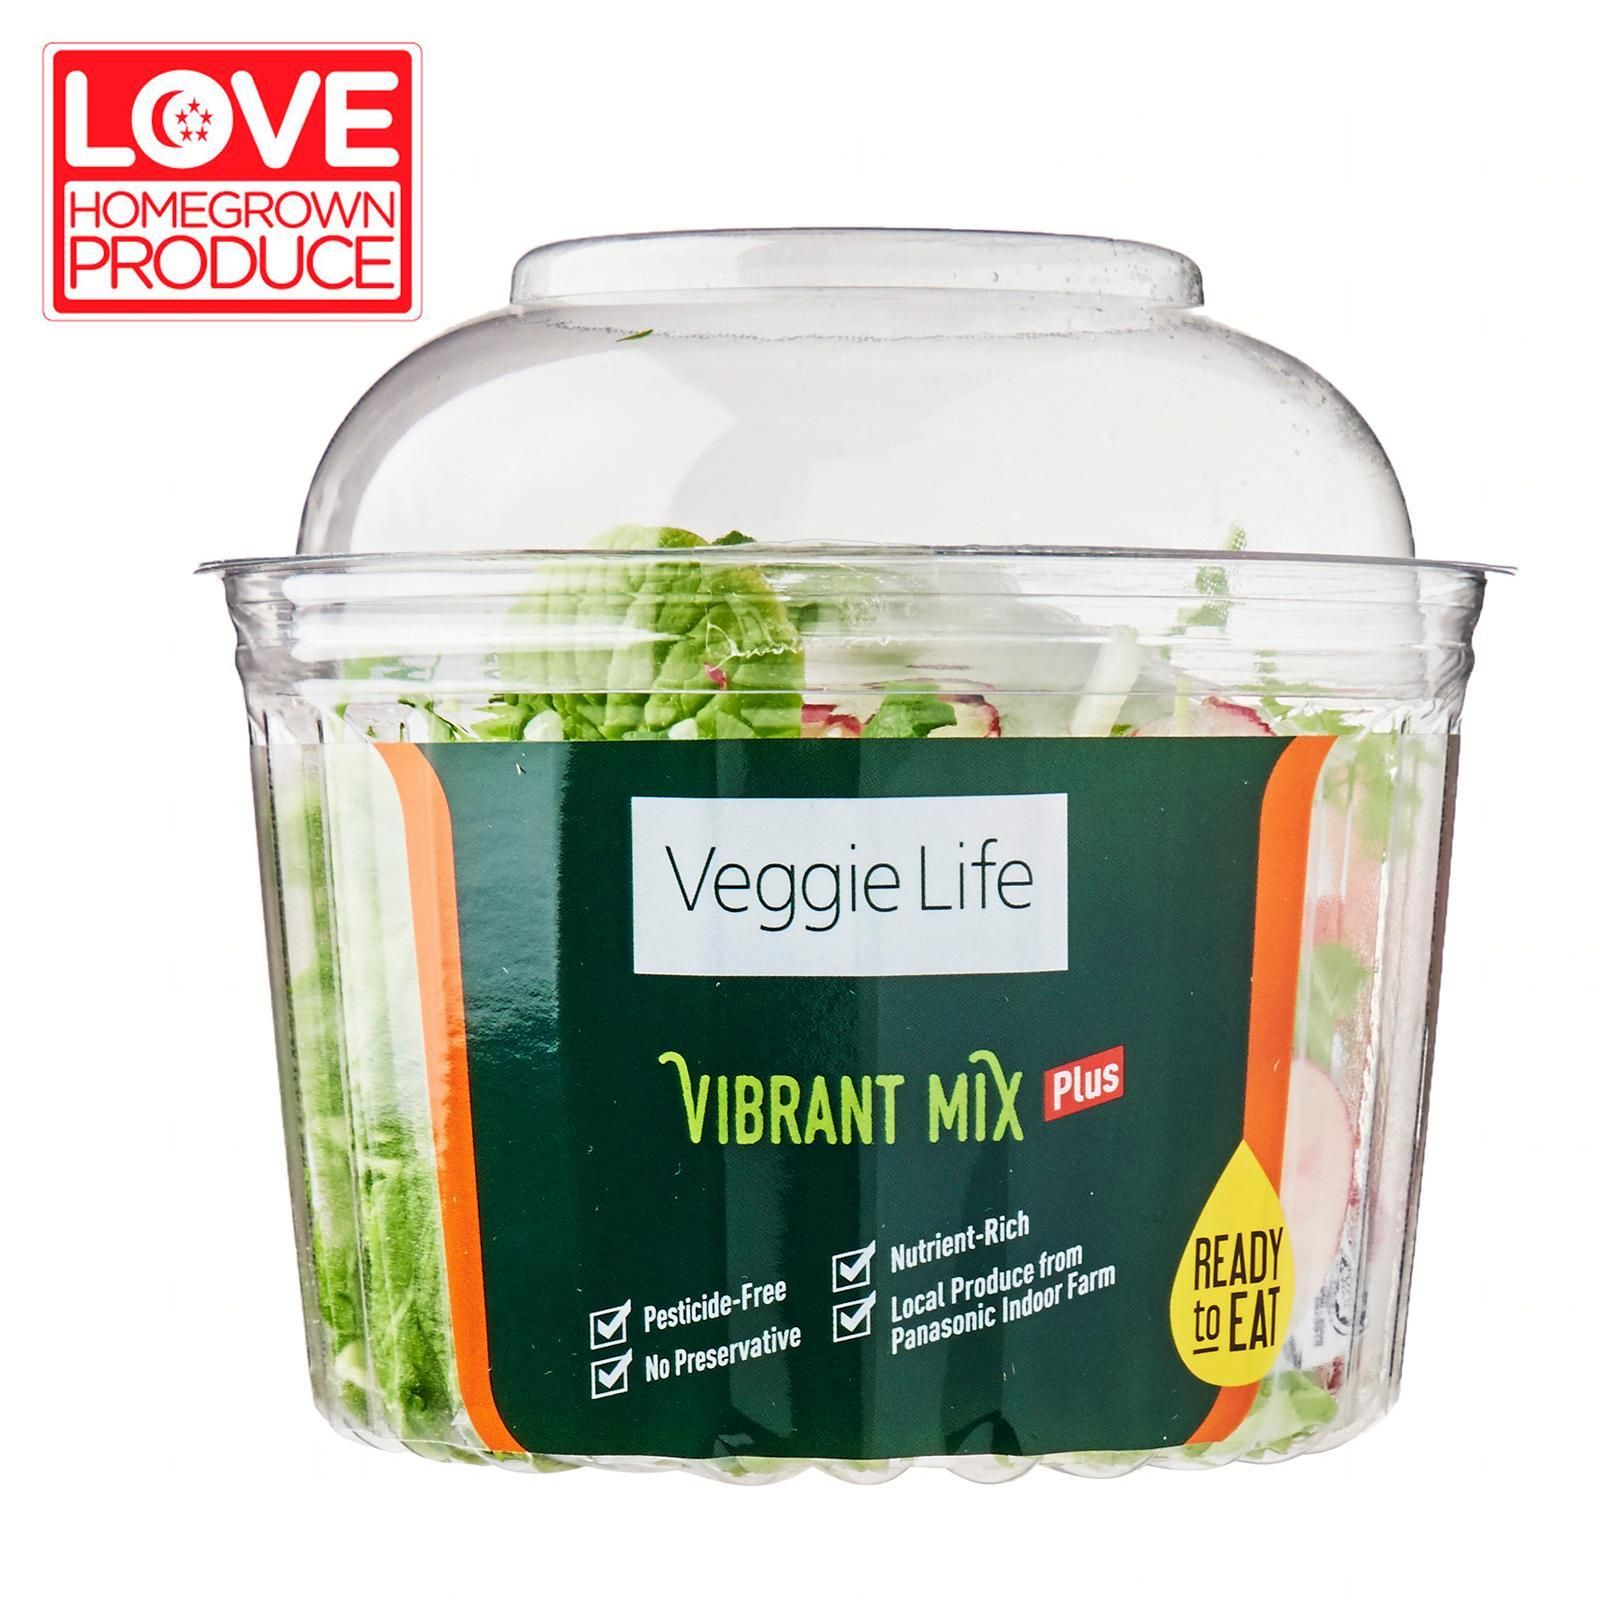 Veggie Life Vibrant Plus RTE Salad Mix